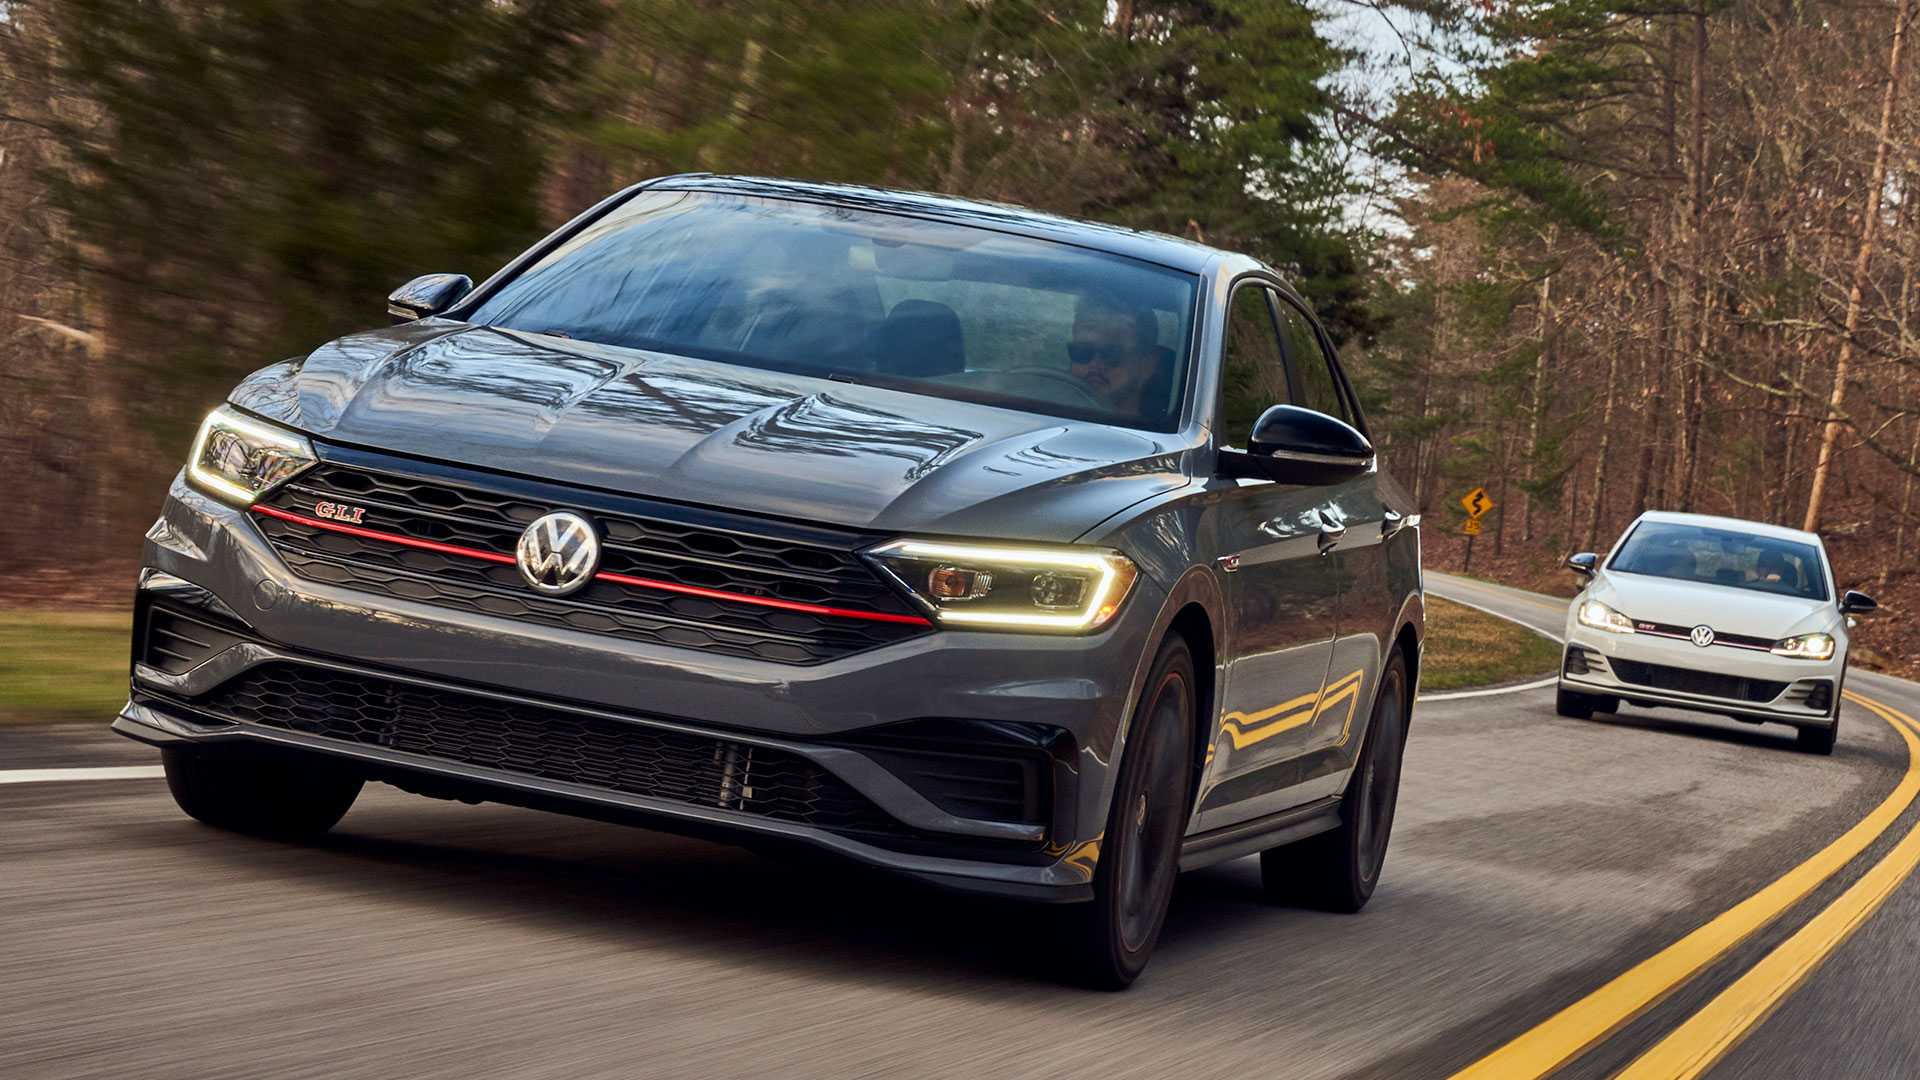 79 All New 2019 Volkswagen Jetta Gli Spy Shoot